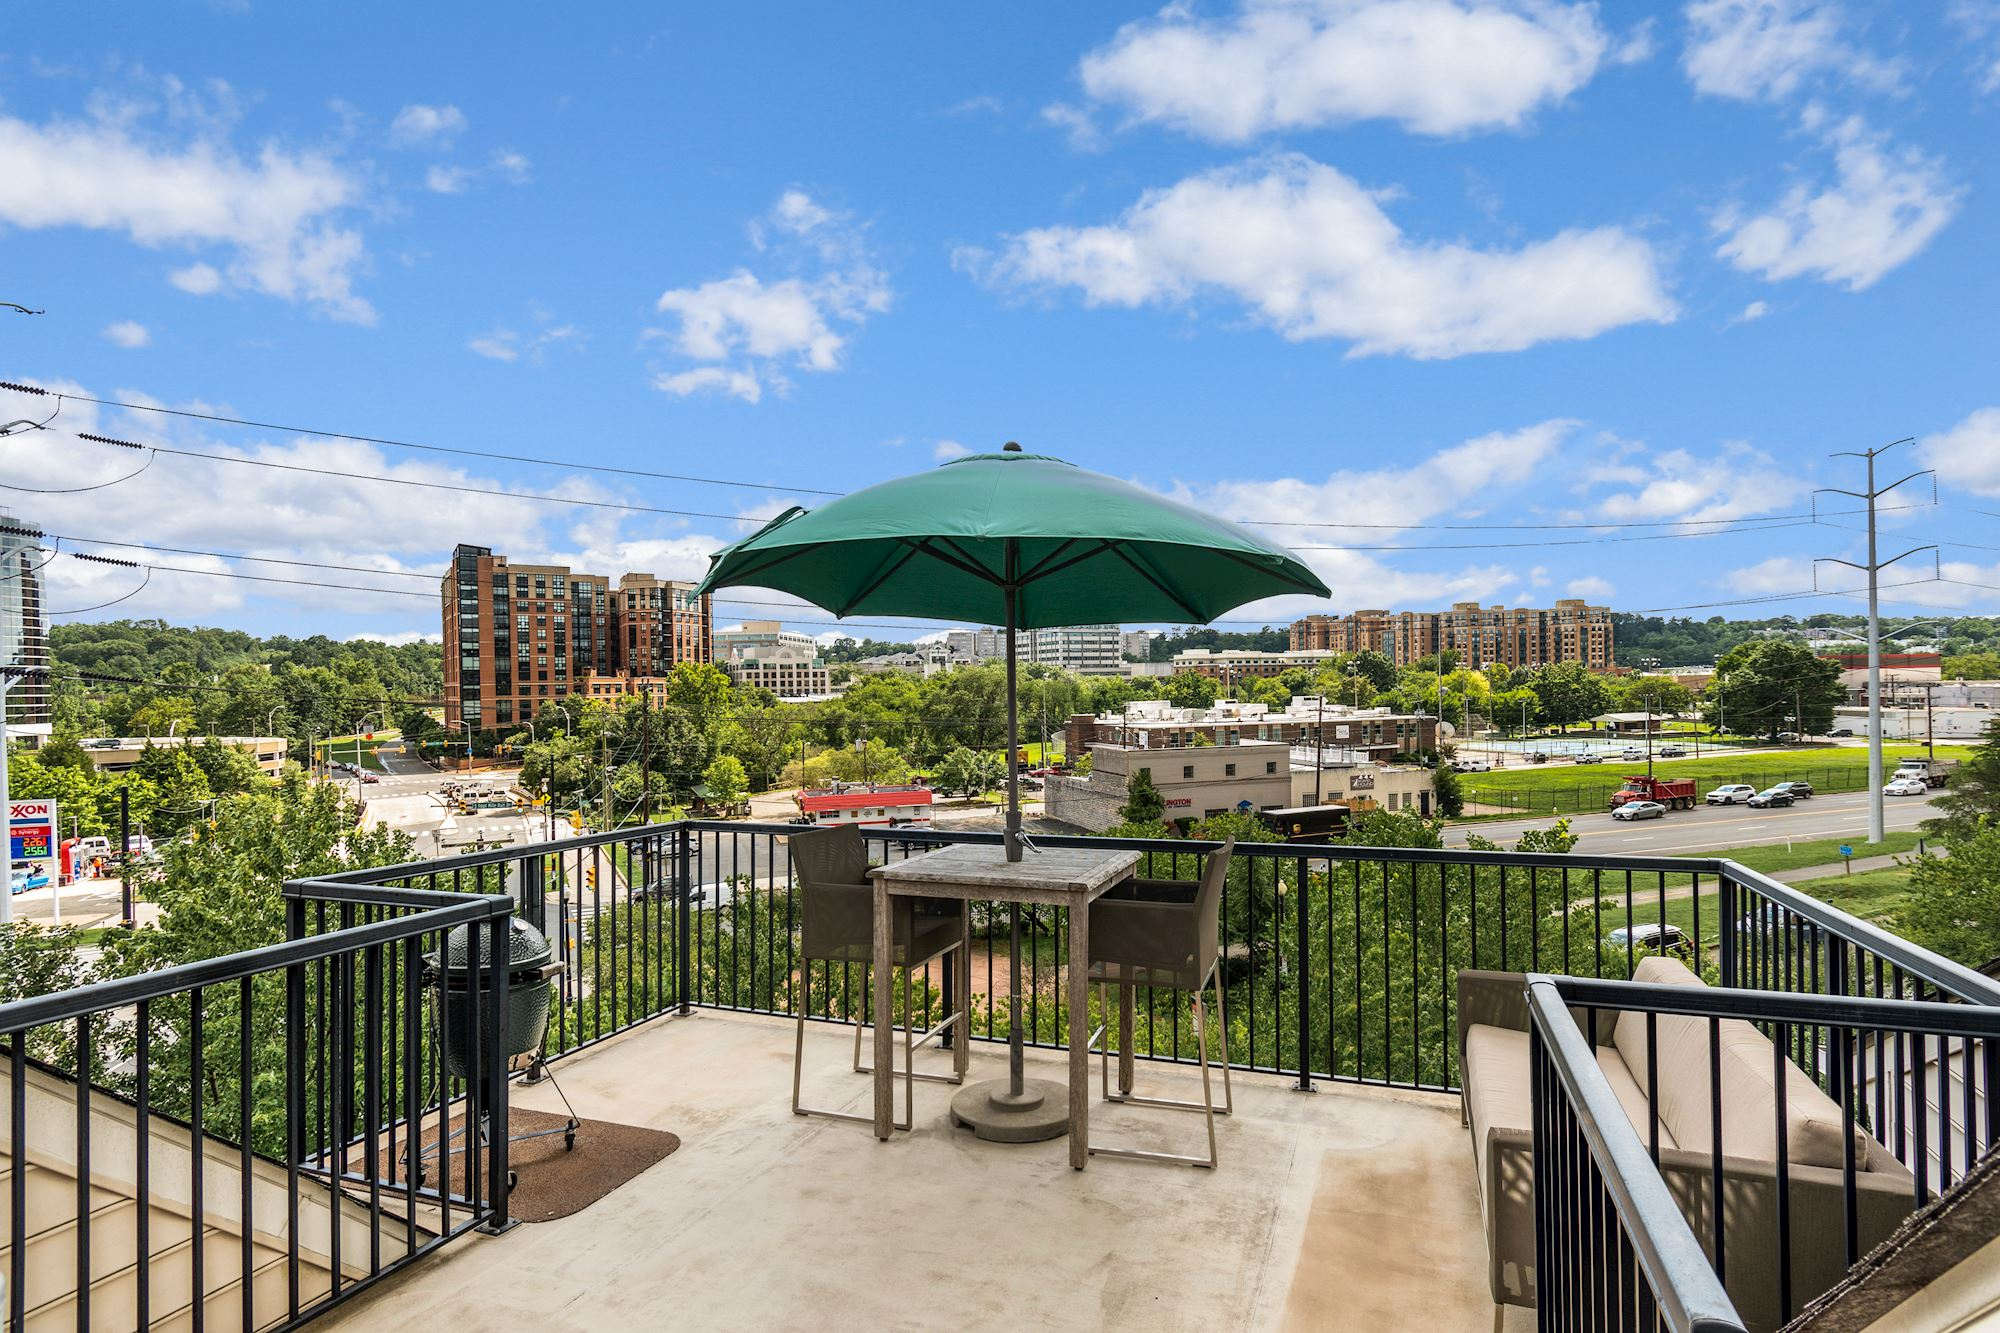 SOLD: Premium End Unit Townhome in Shirlington Crest Community, Arlington, VA